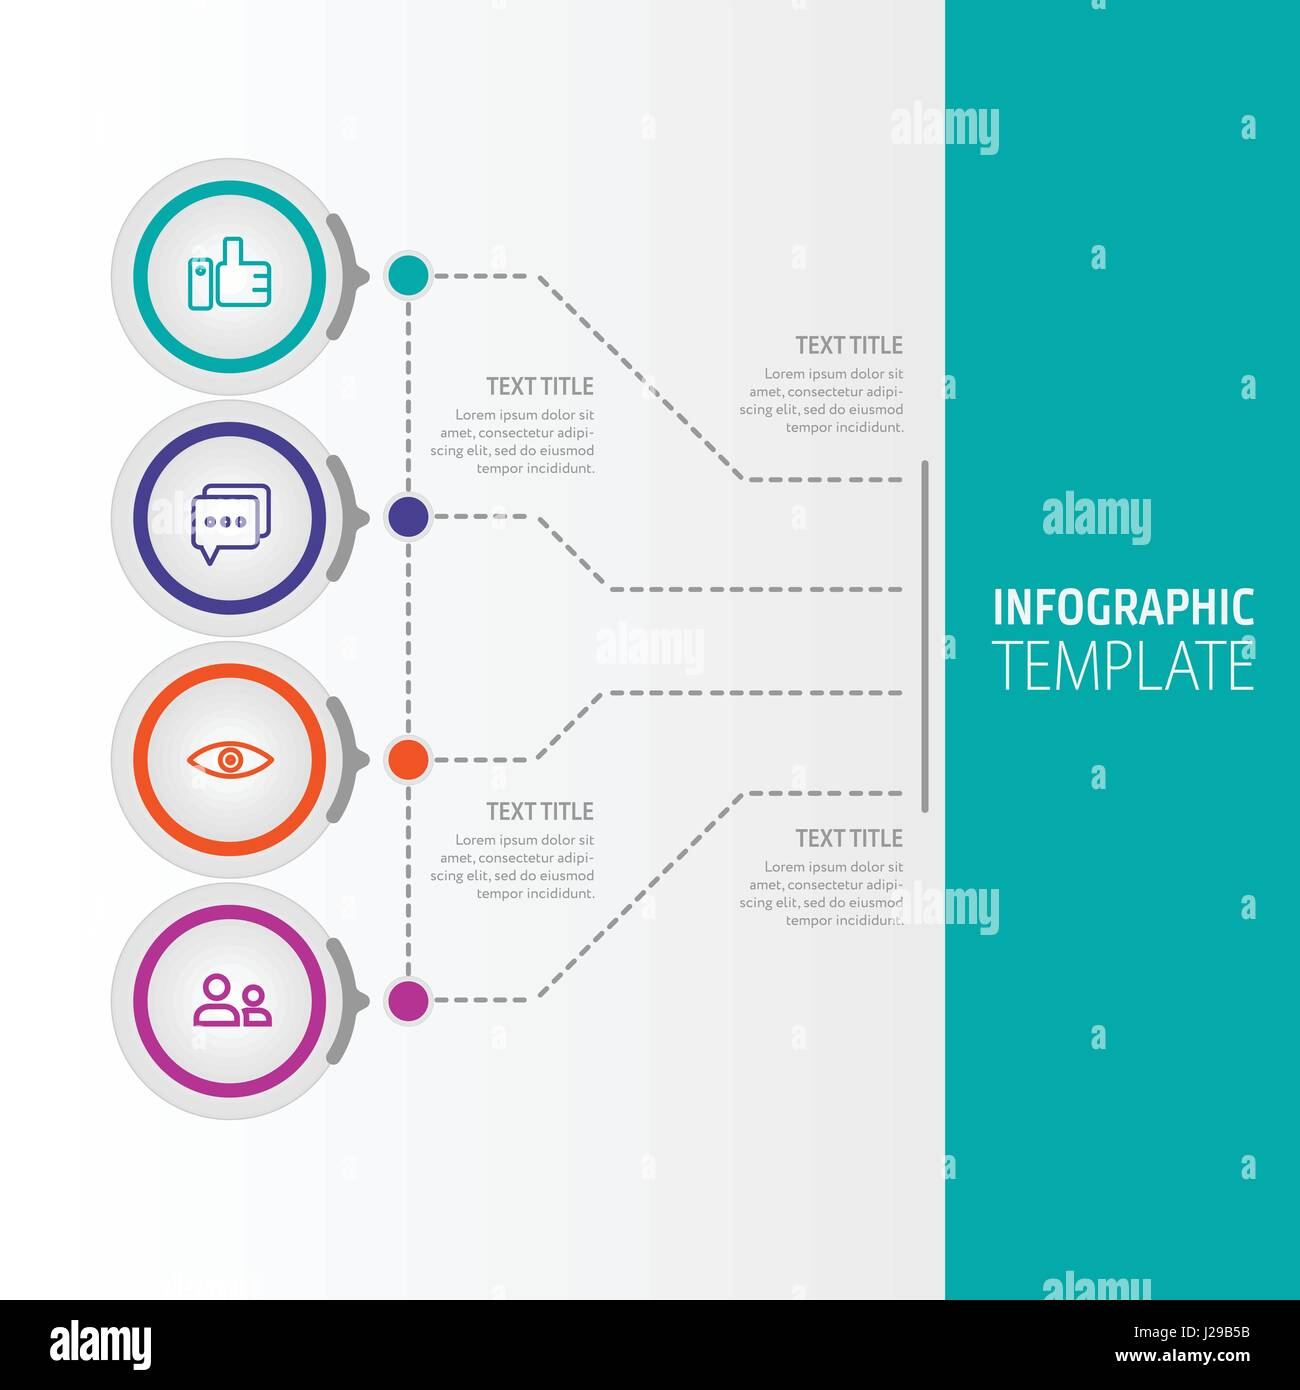 Business infographic concept - vector set of infographic elements in flat design style for presentation, booklet, - Stock Image